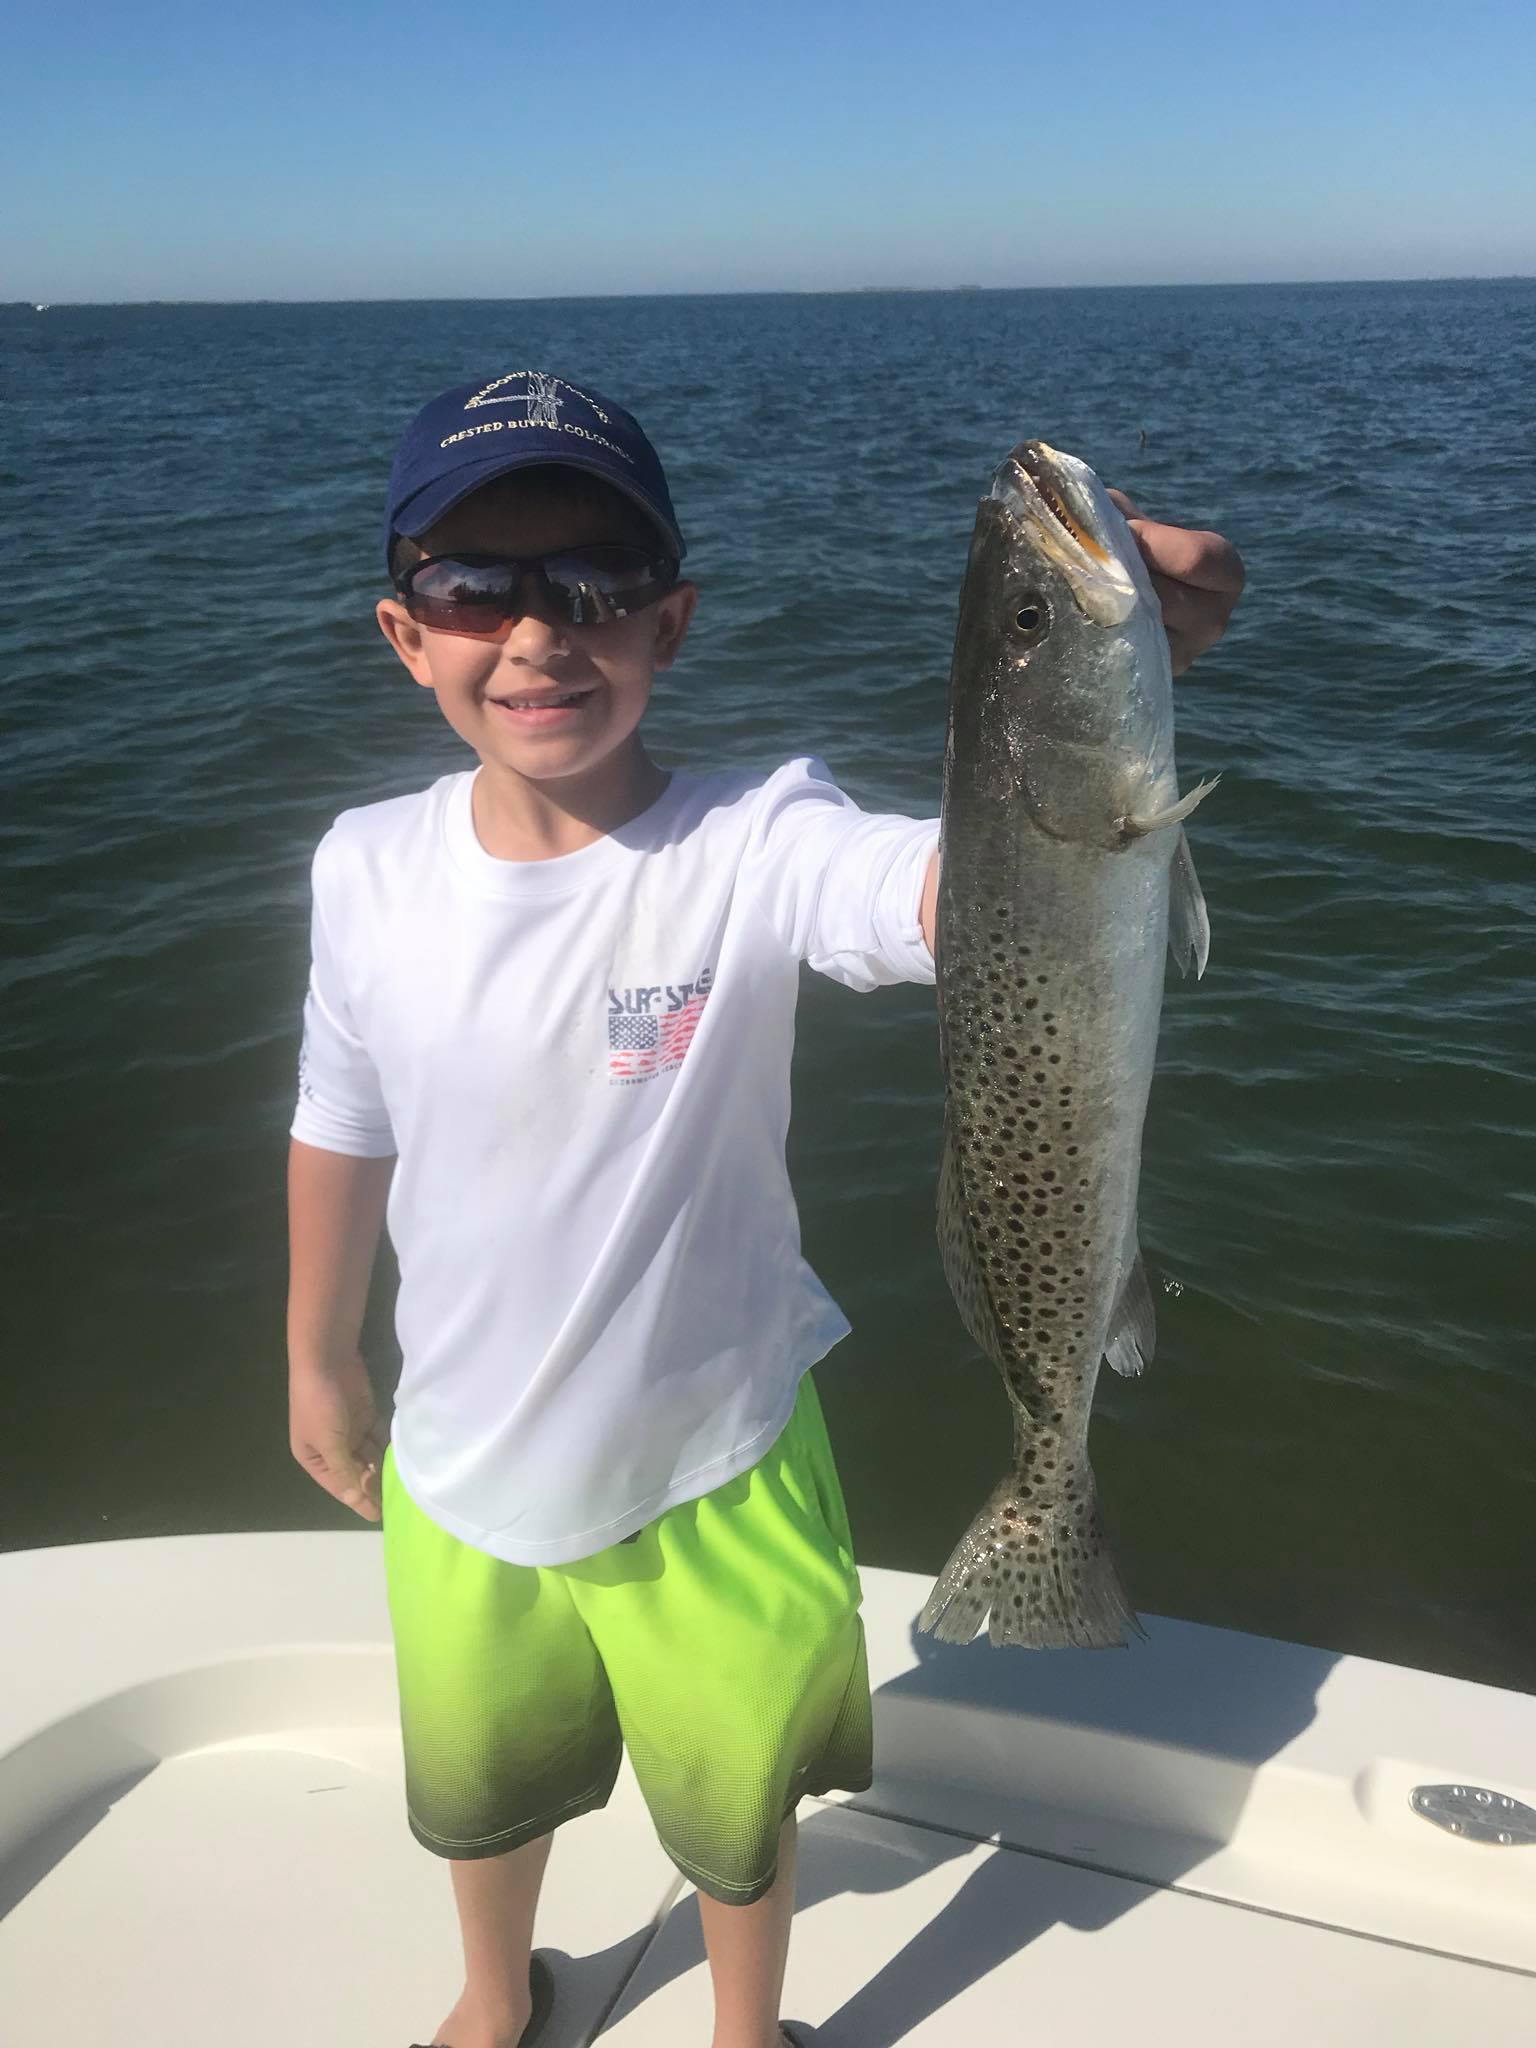 23926464 1893002687695021 1520662673772611231 o - Spotted Seatrout Fishing in Clearwater